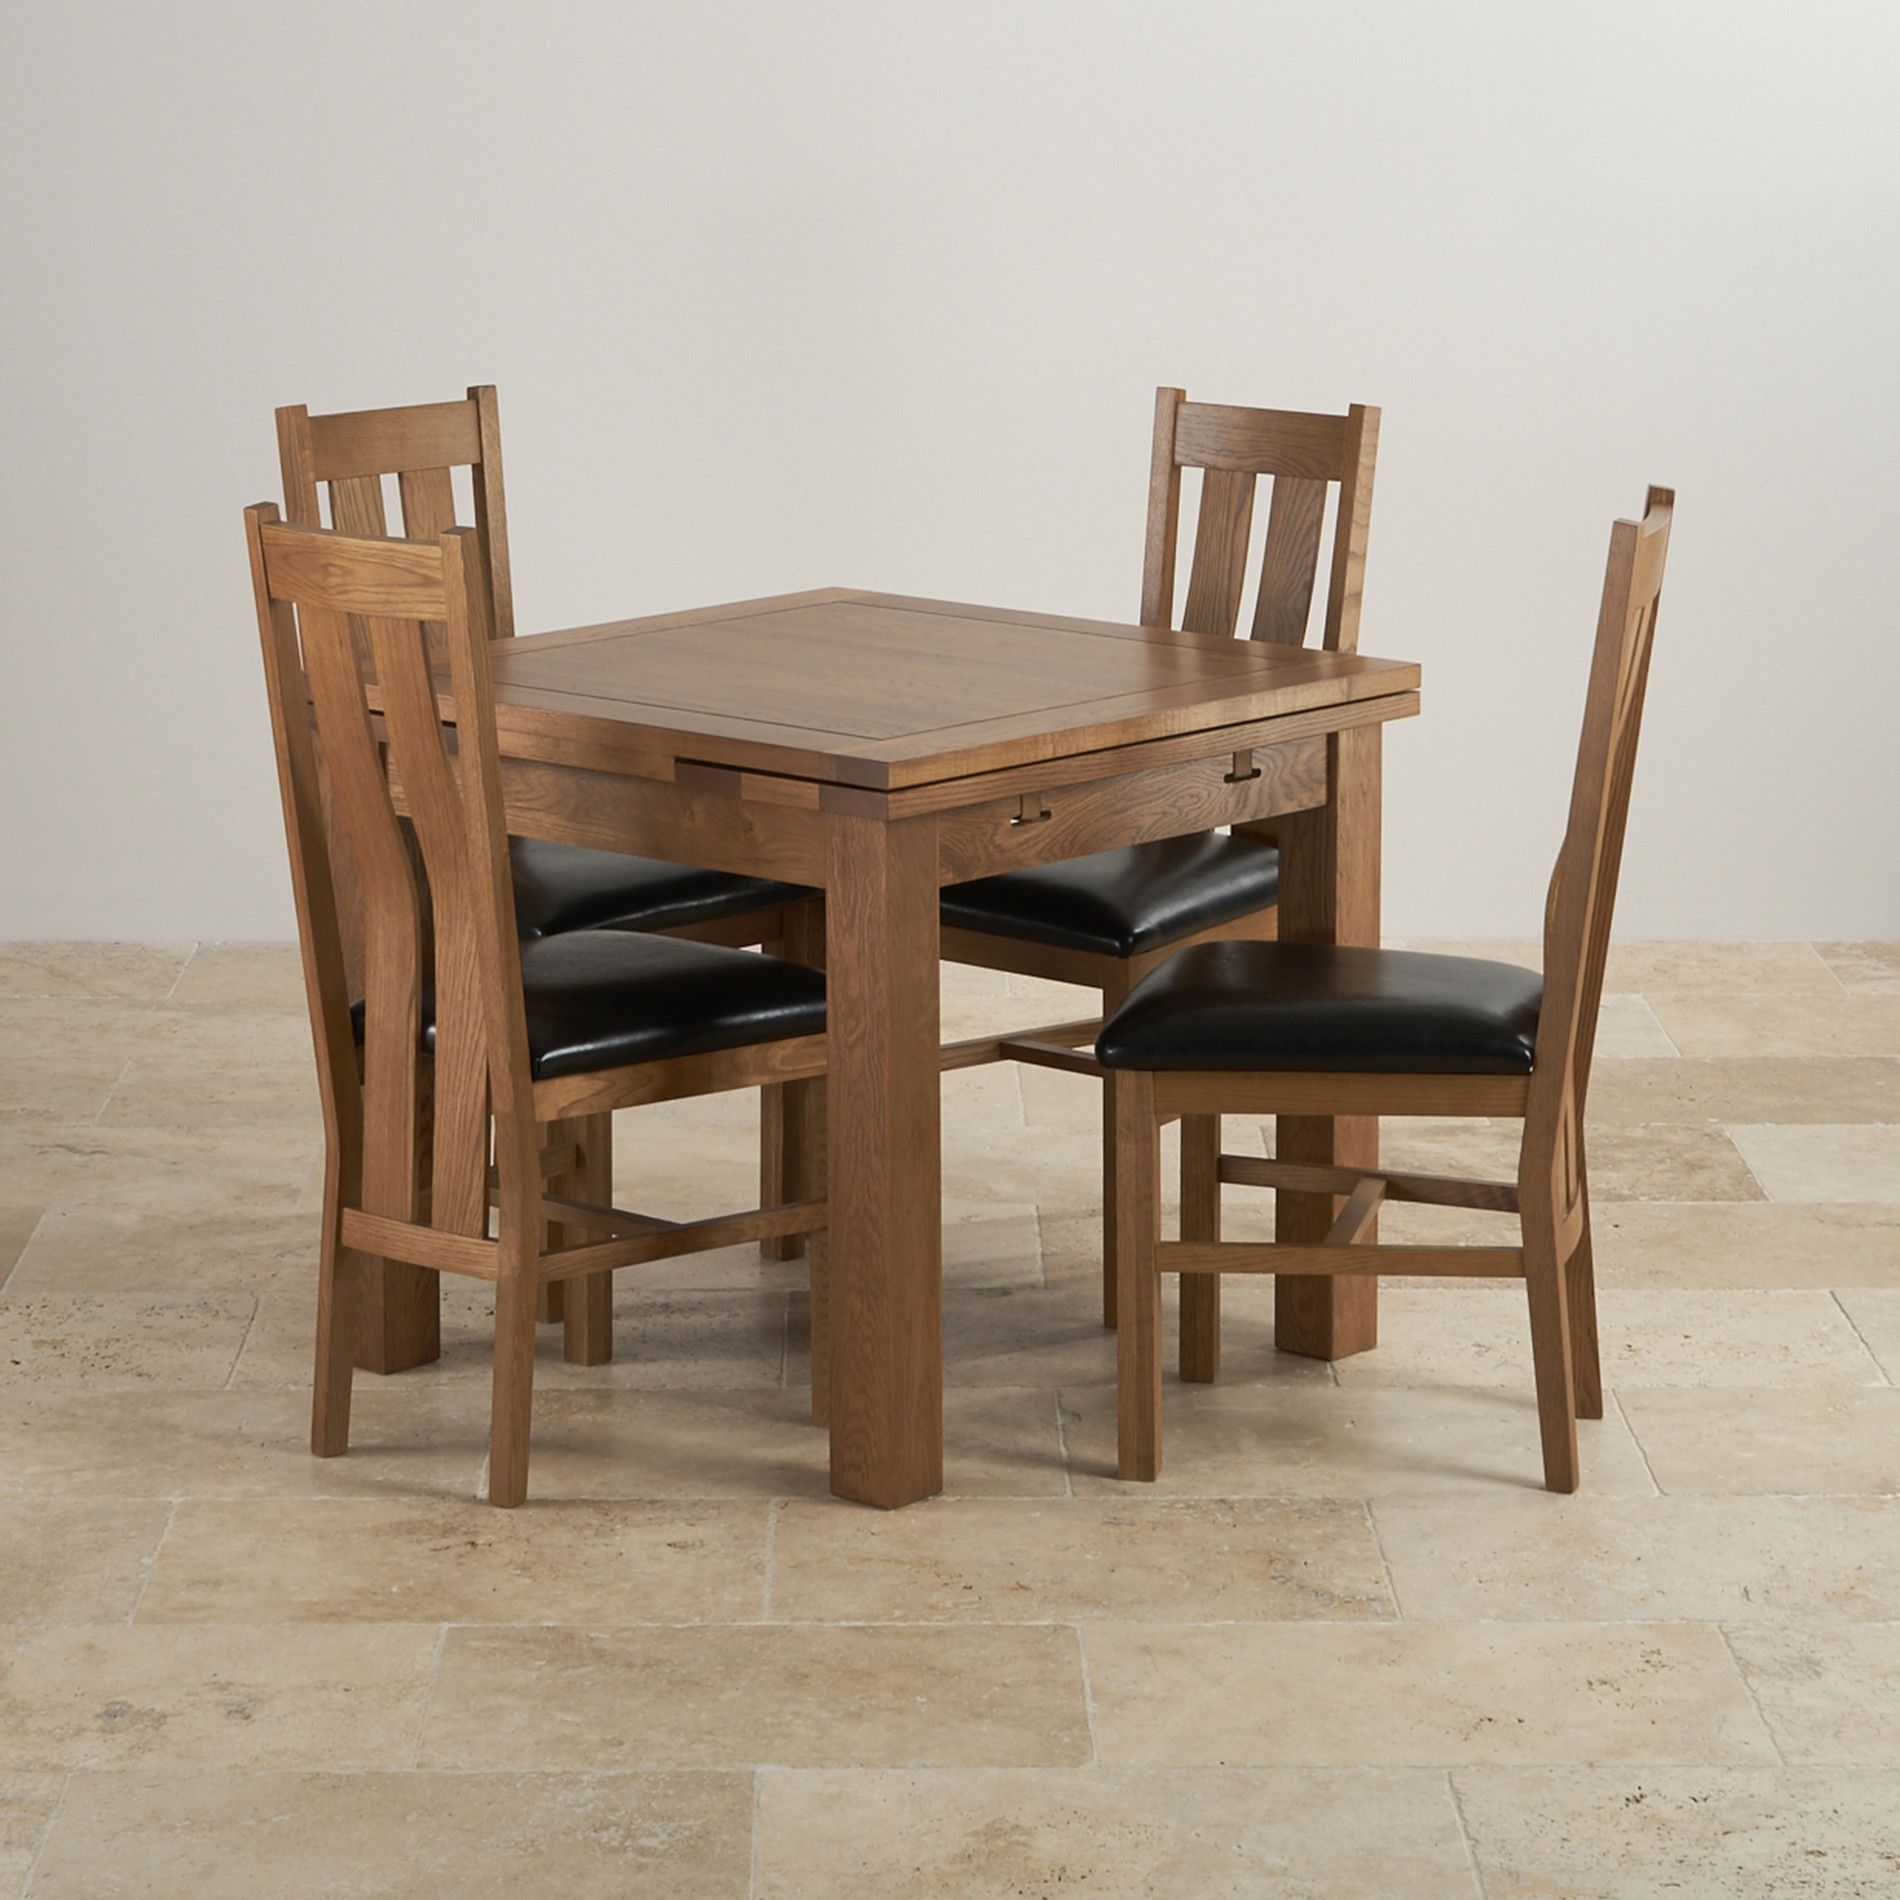 3ft x 3ft rustic solid oak extending dining table seats up to 6 people extended - Solid Oak Extending Dining Table And 6 Chairs